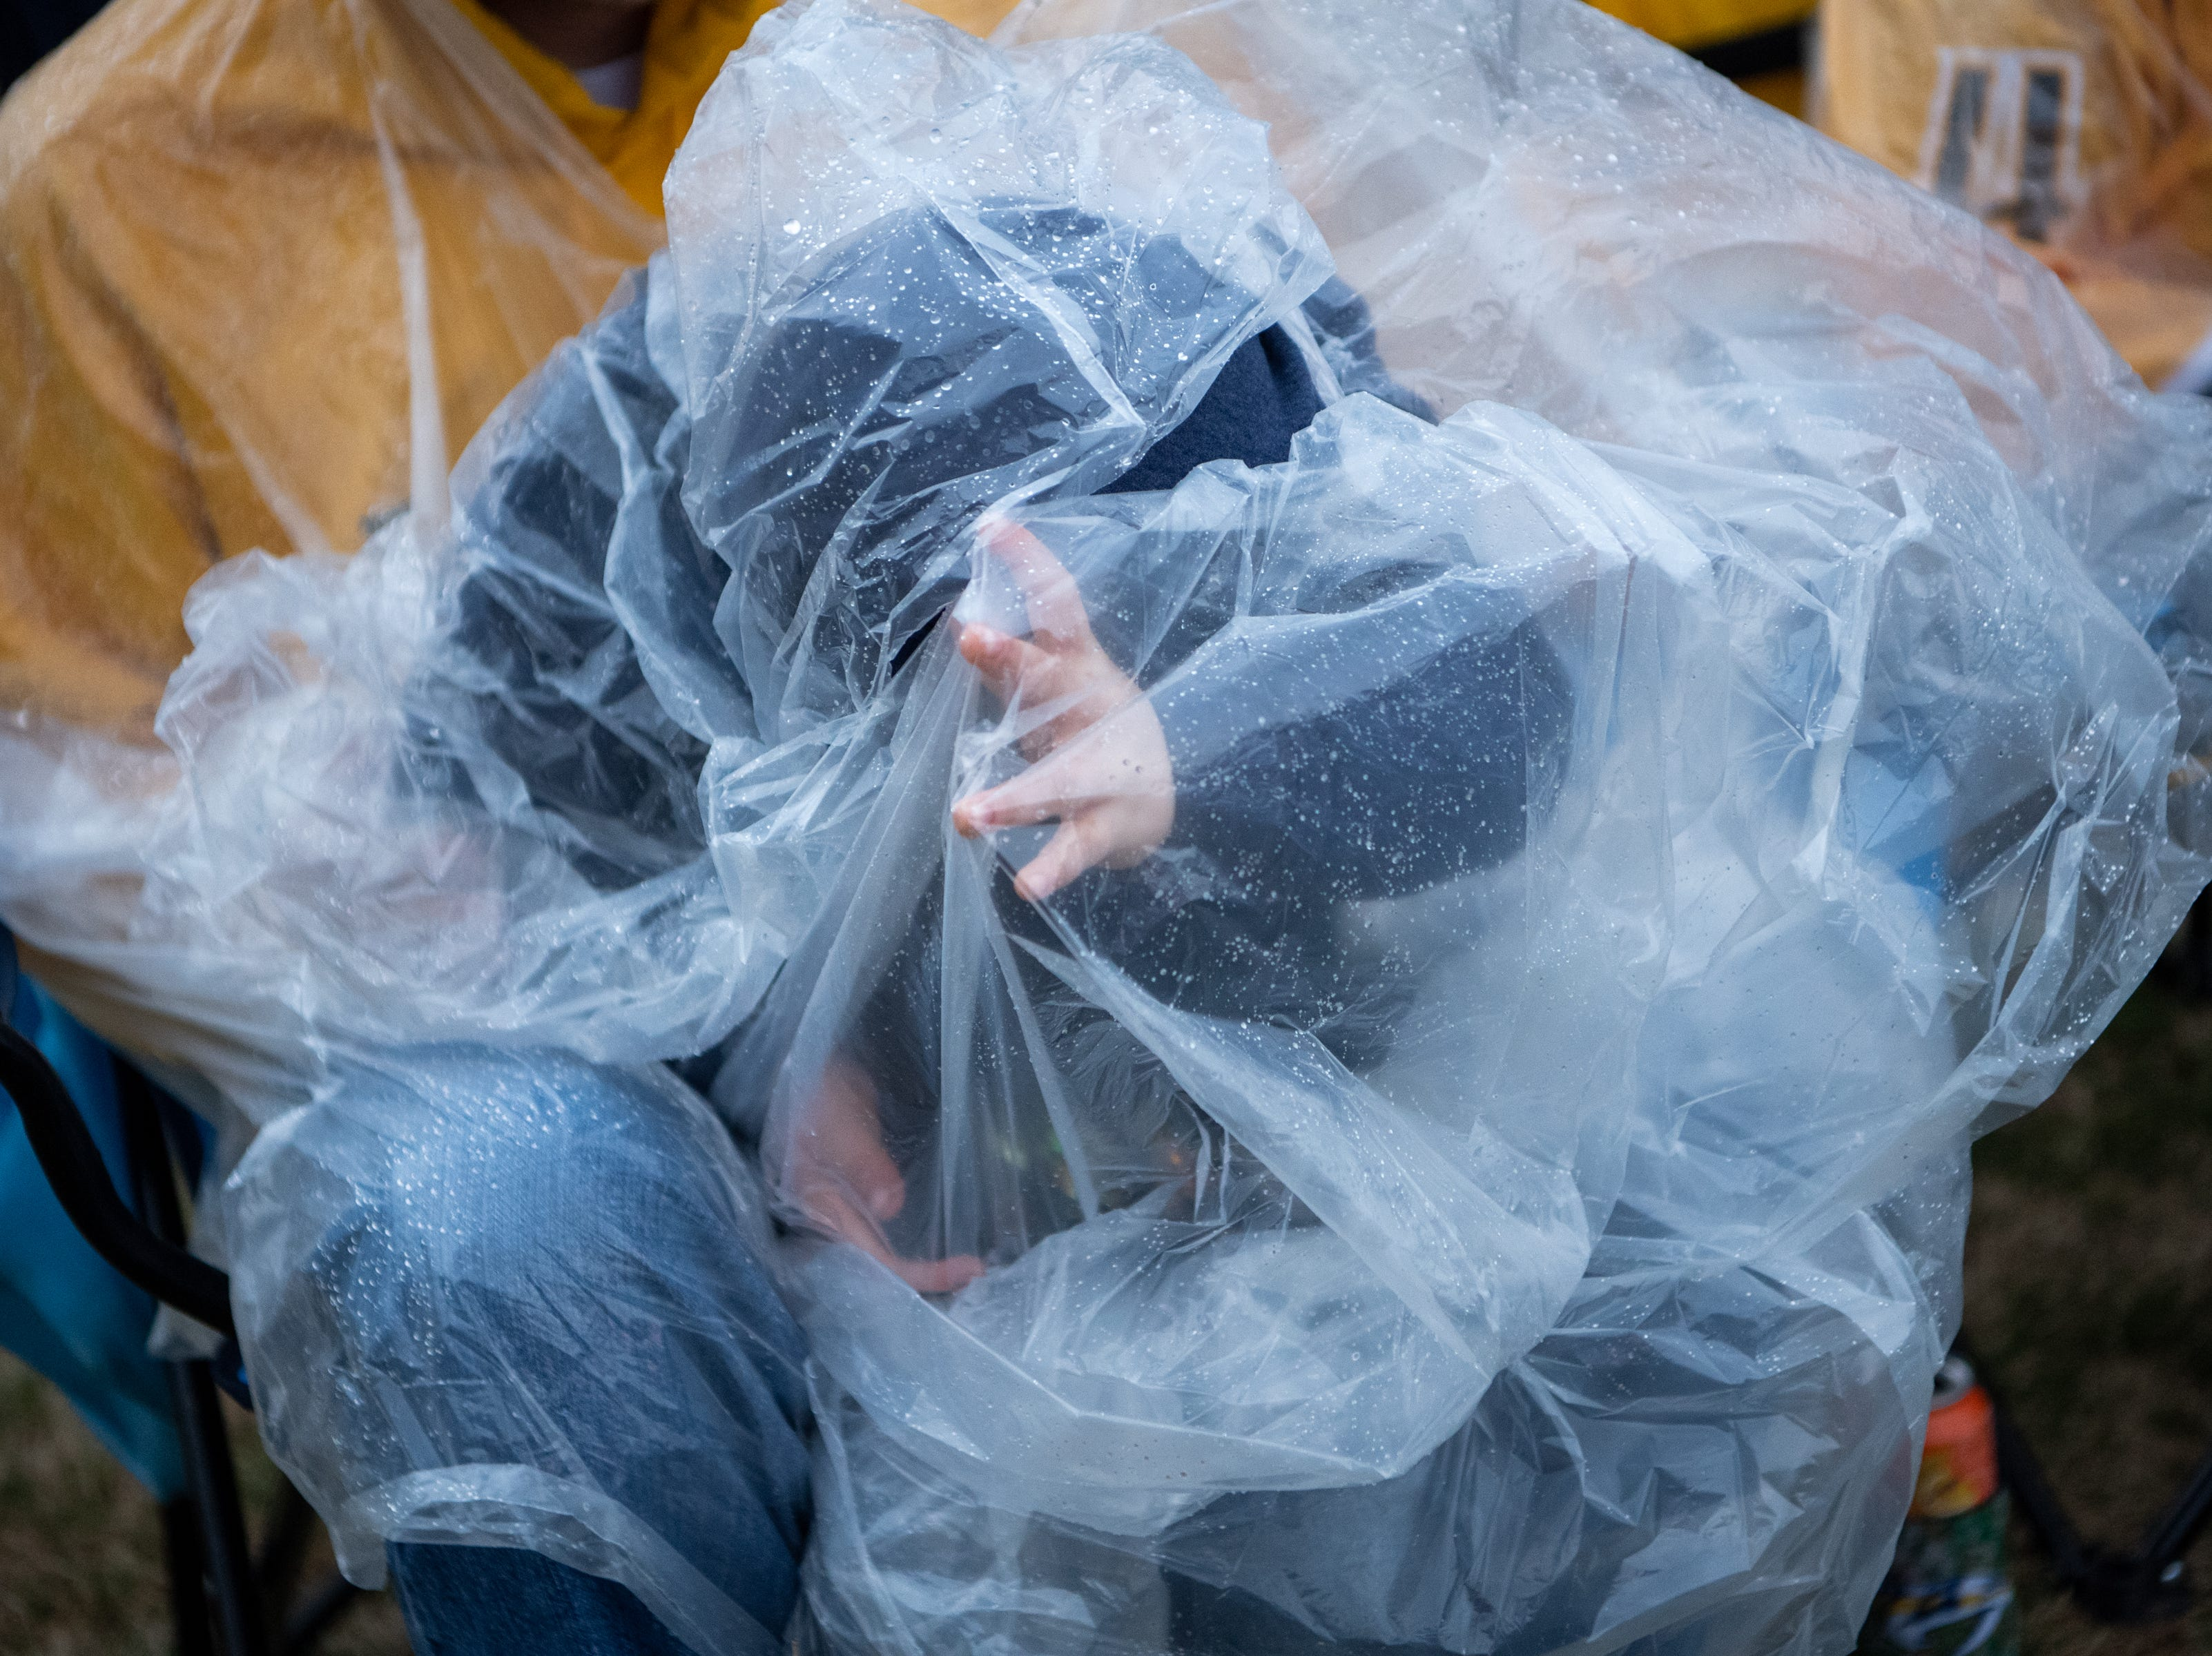 JD Conrey, 4, struggles under a rain poncho during the second period of the Nashville Predators game against the Dallas Stars at Preds Party in the Park at Walk of Fame Park Saturday, April 13, 2019, in Nashville, Tenn.